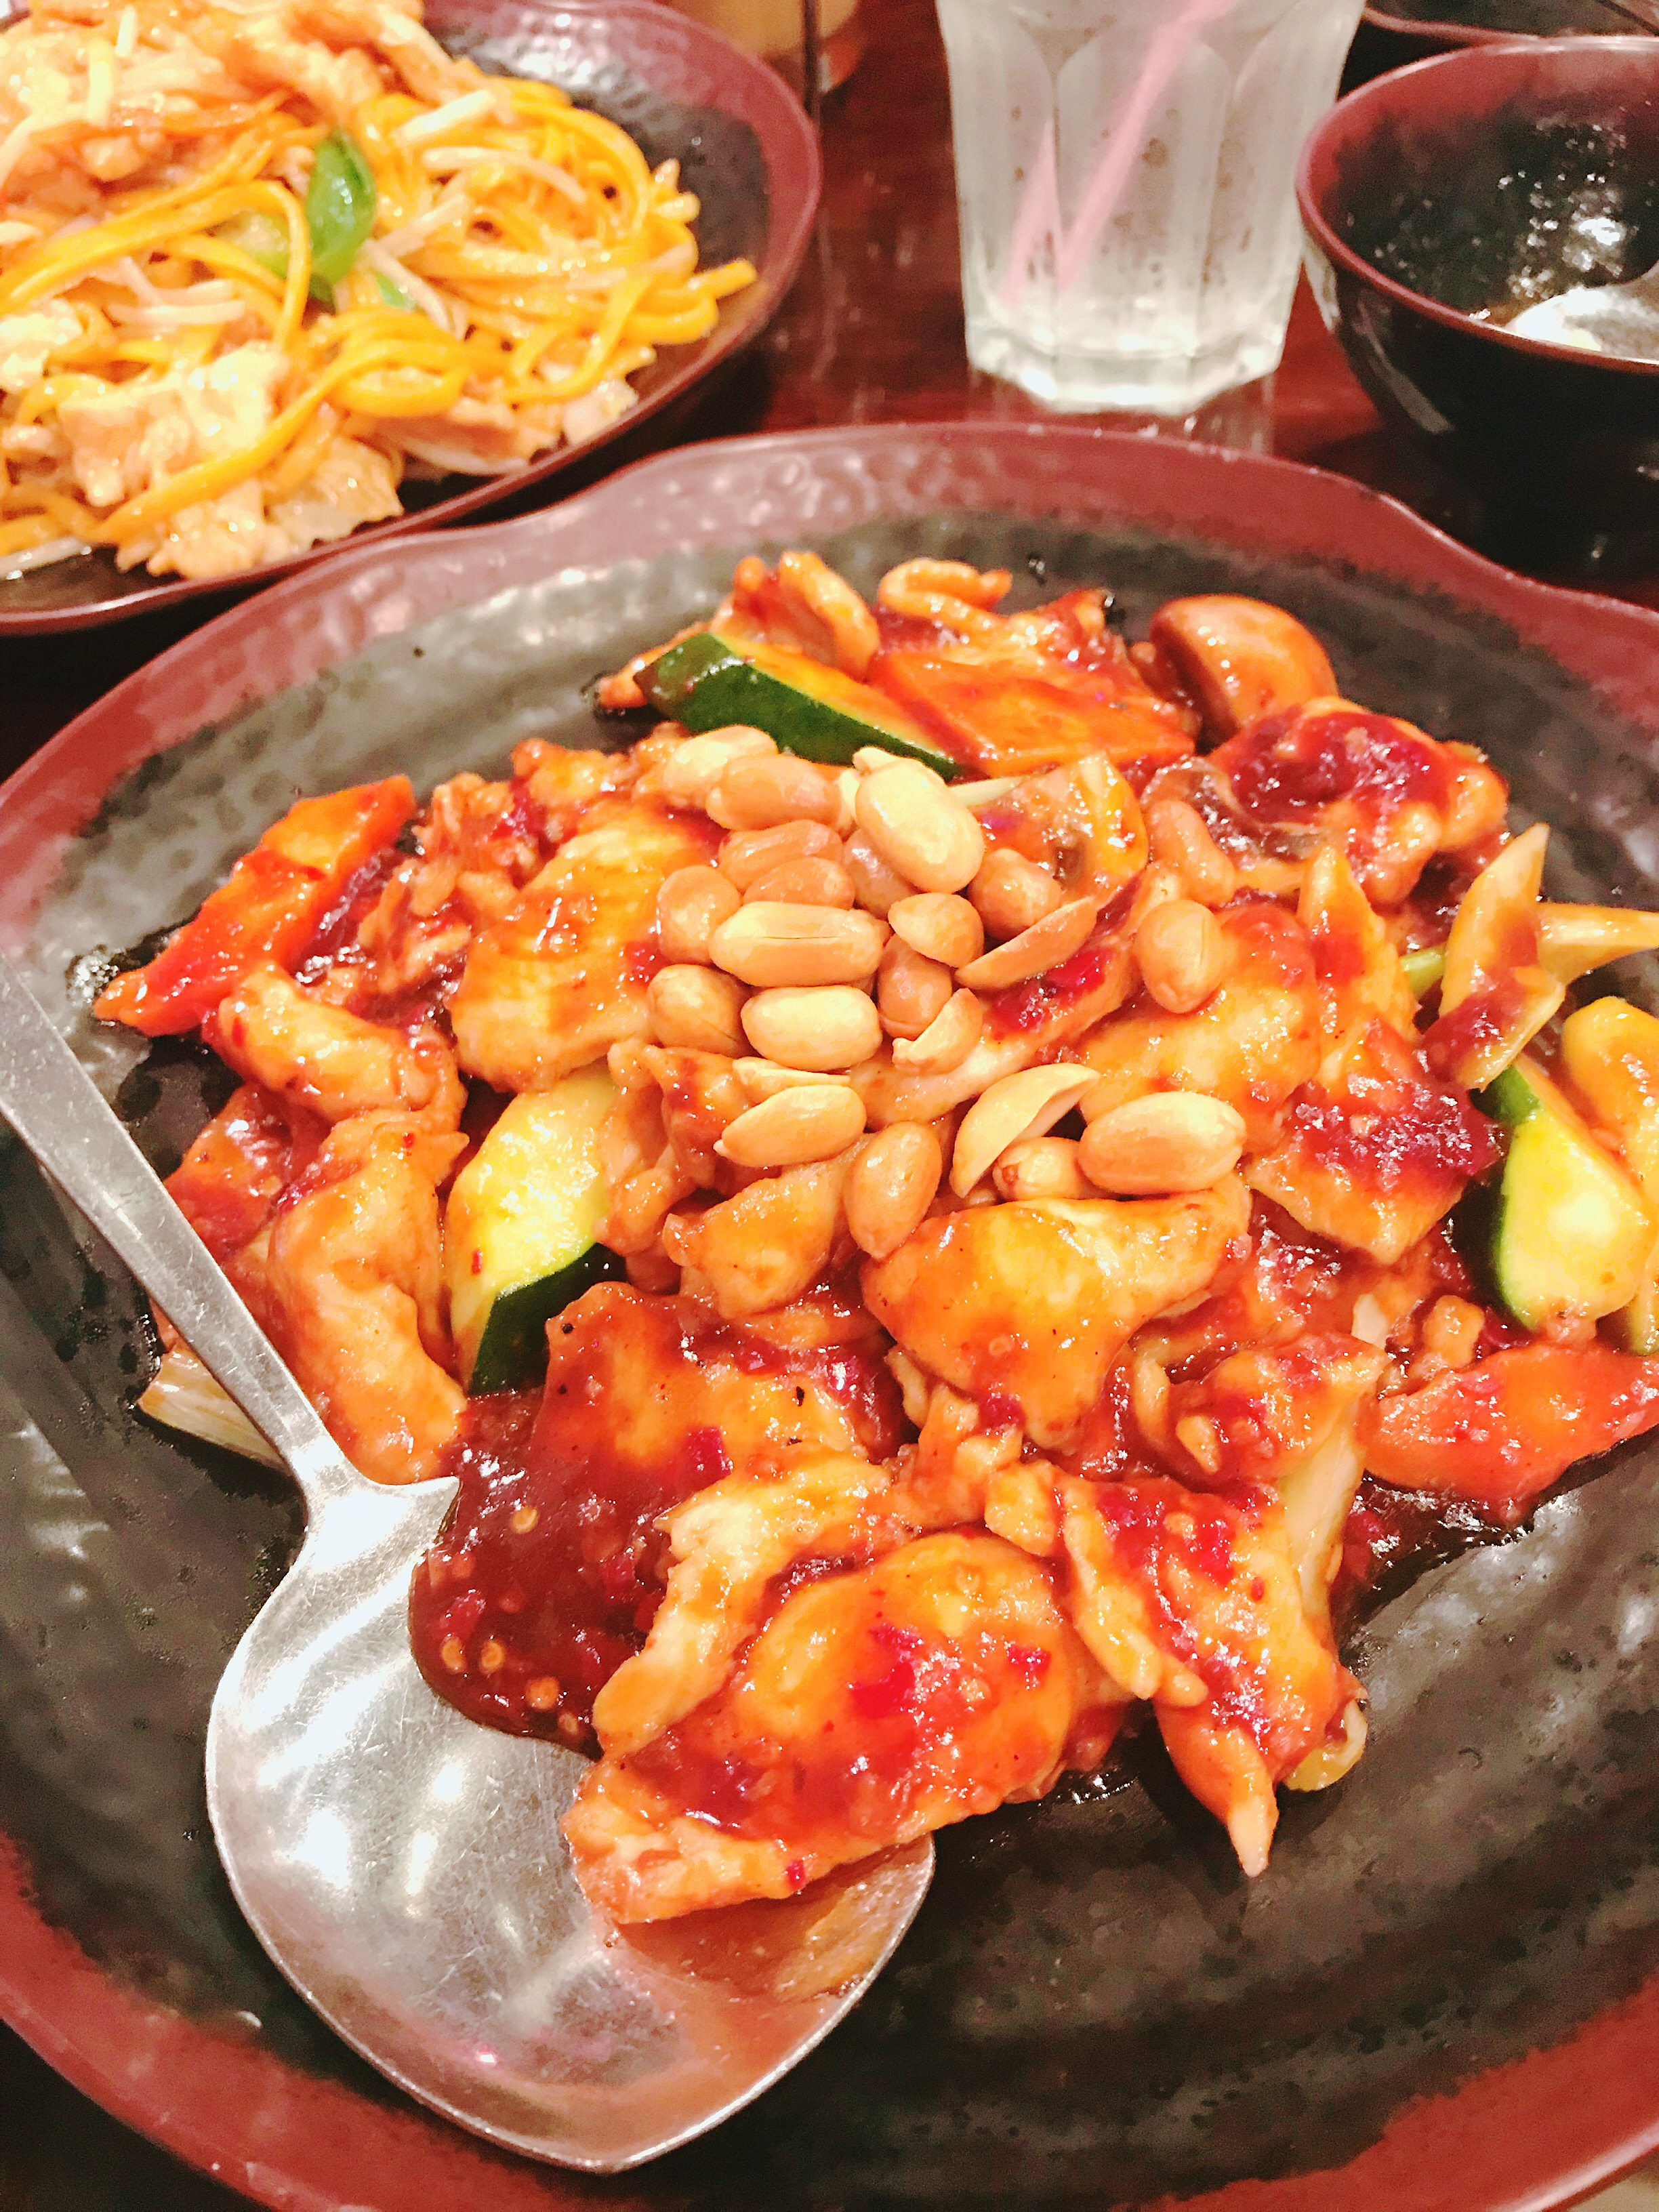 Halal General Tso Chicken at Jade Ly Asian Bistro, Sugar Land, TX